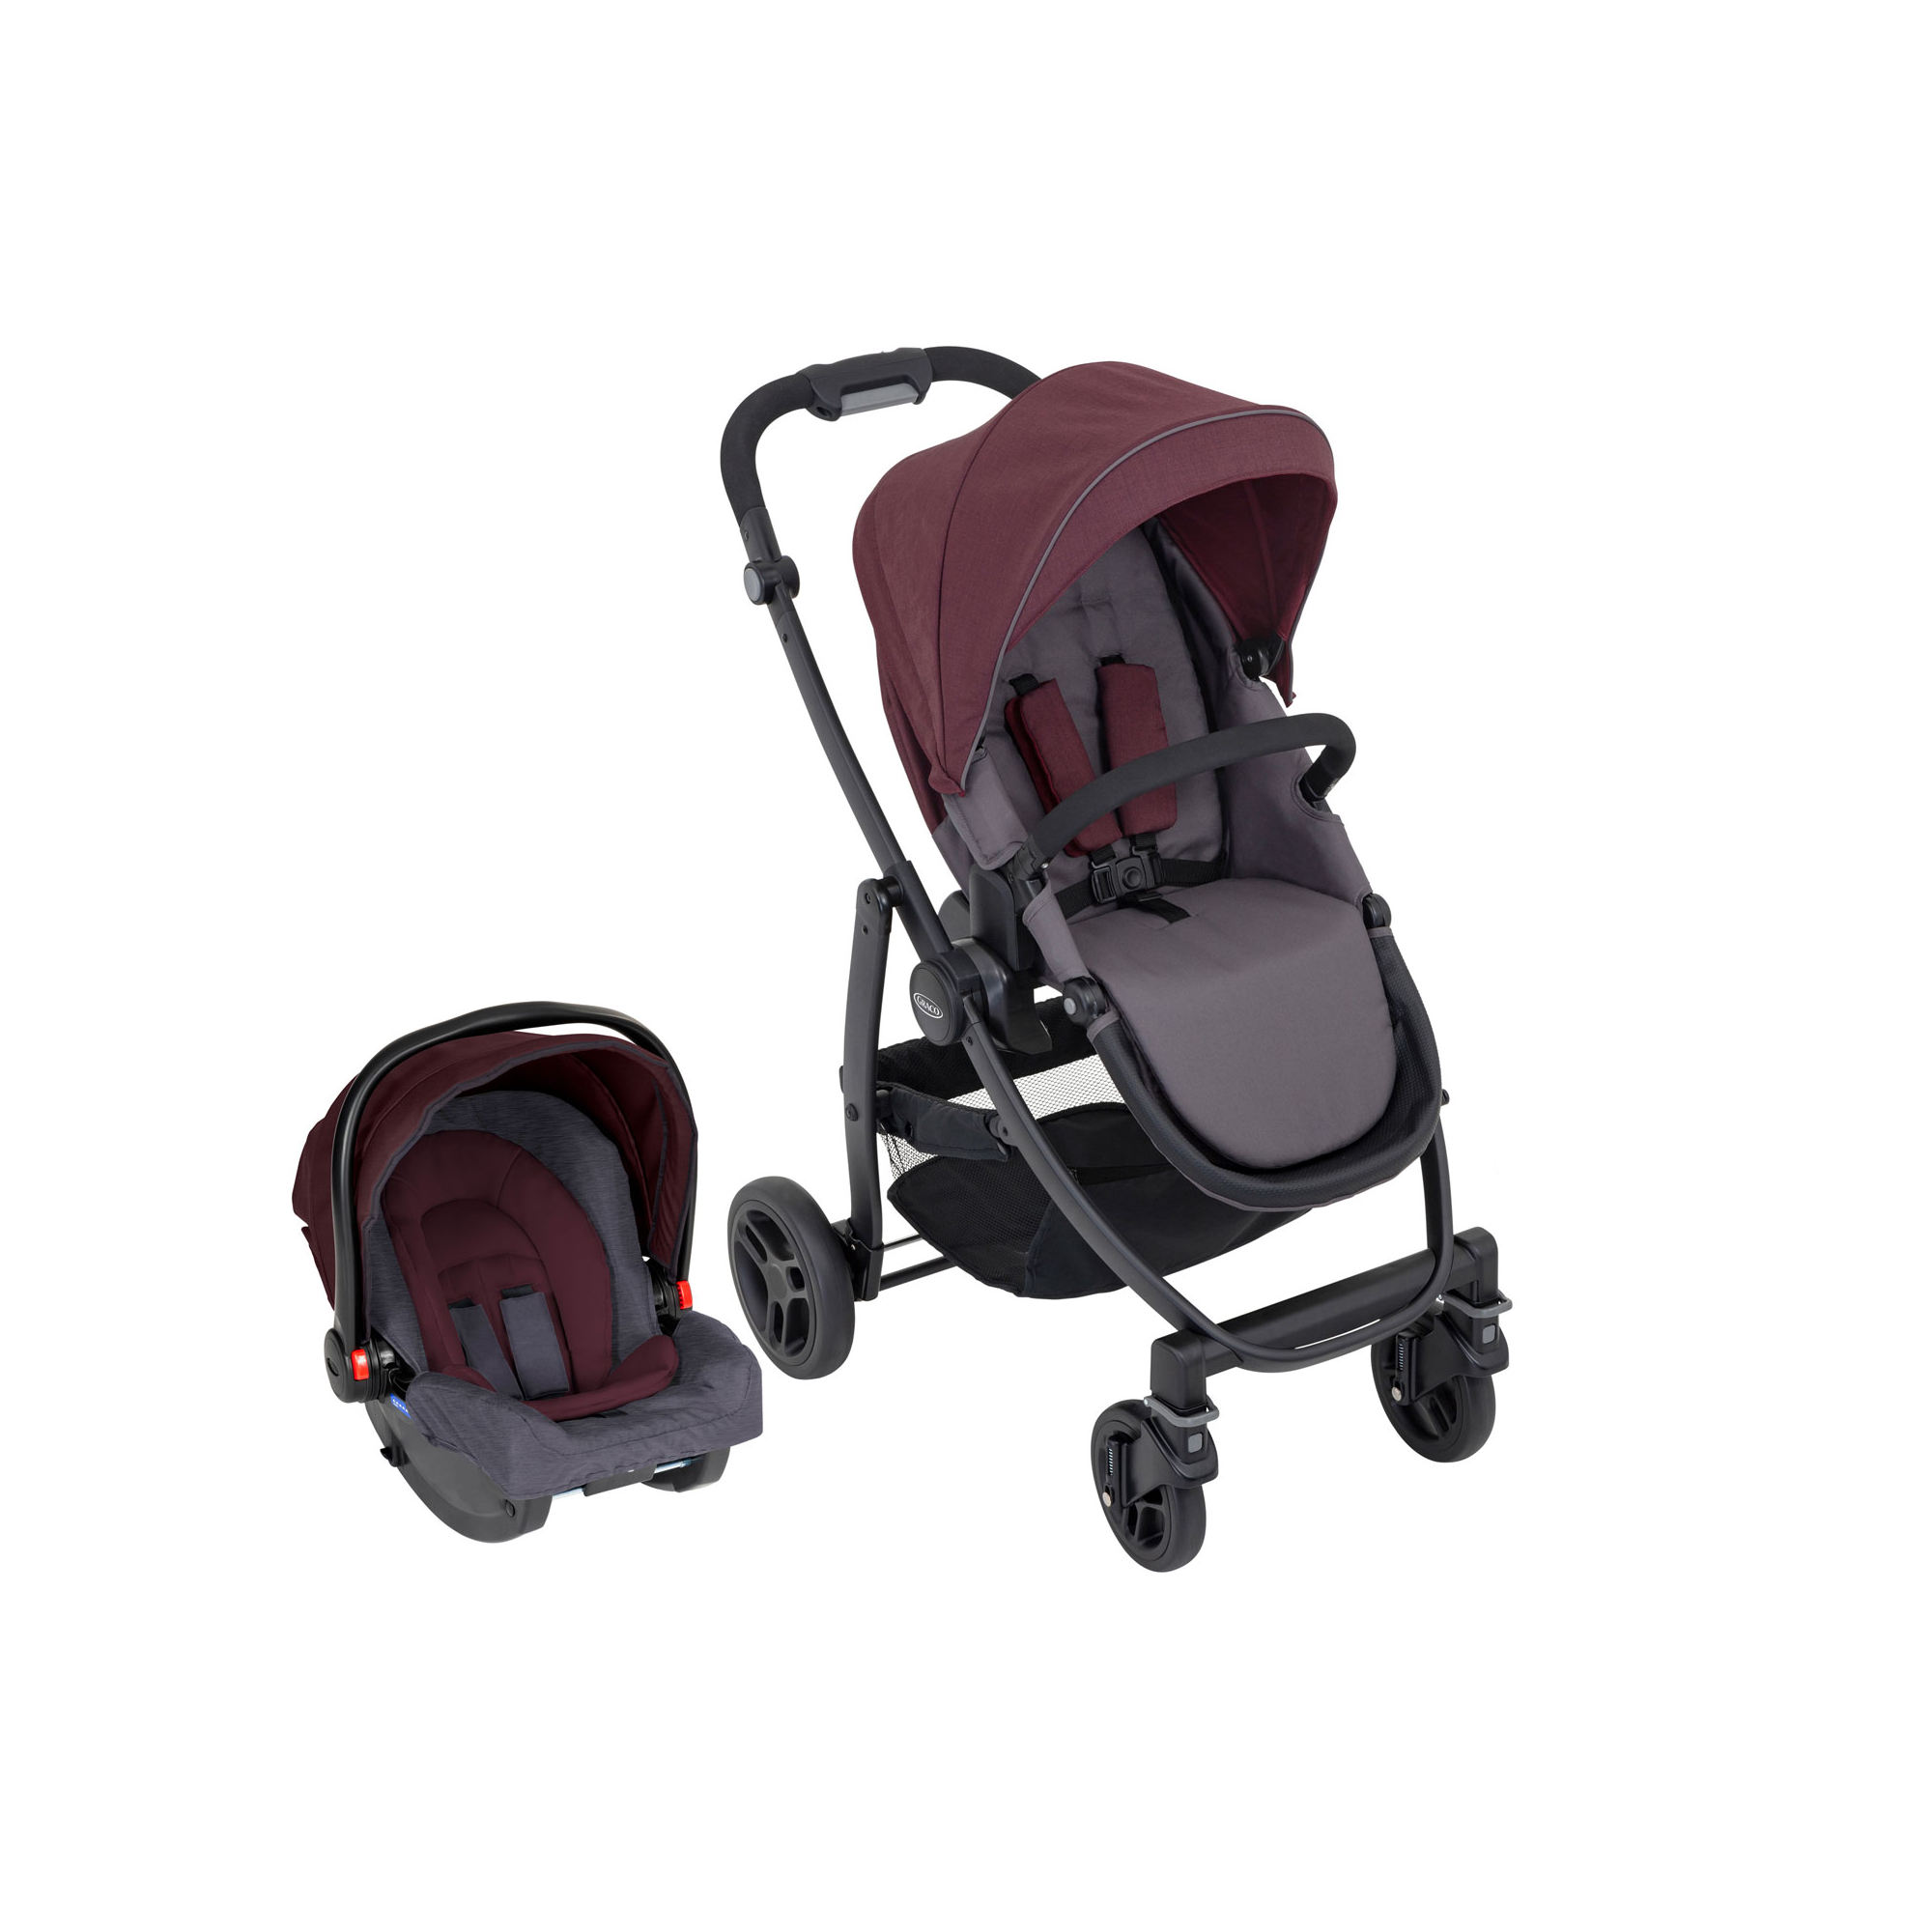 e21ae591c Graco Evo 2 in 1Travel System With Snugride-Crimson - Baby and Child ...